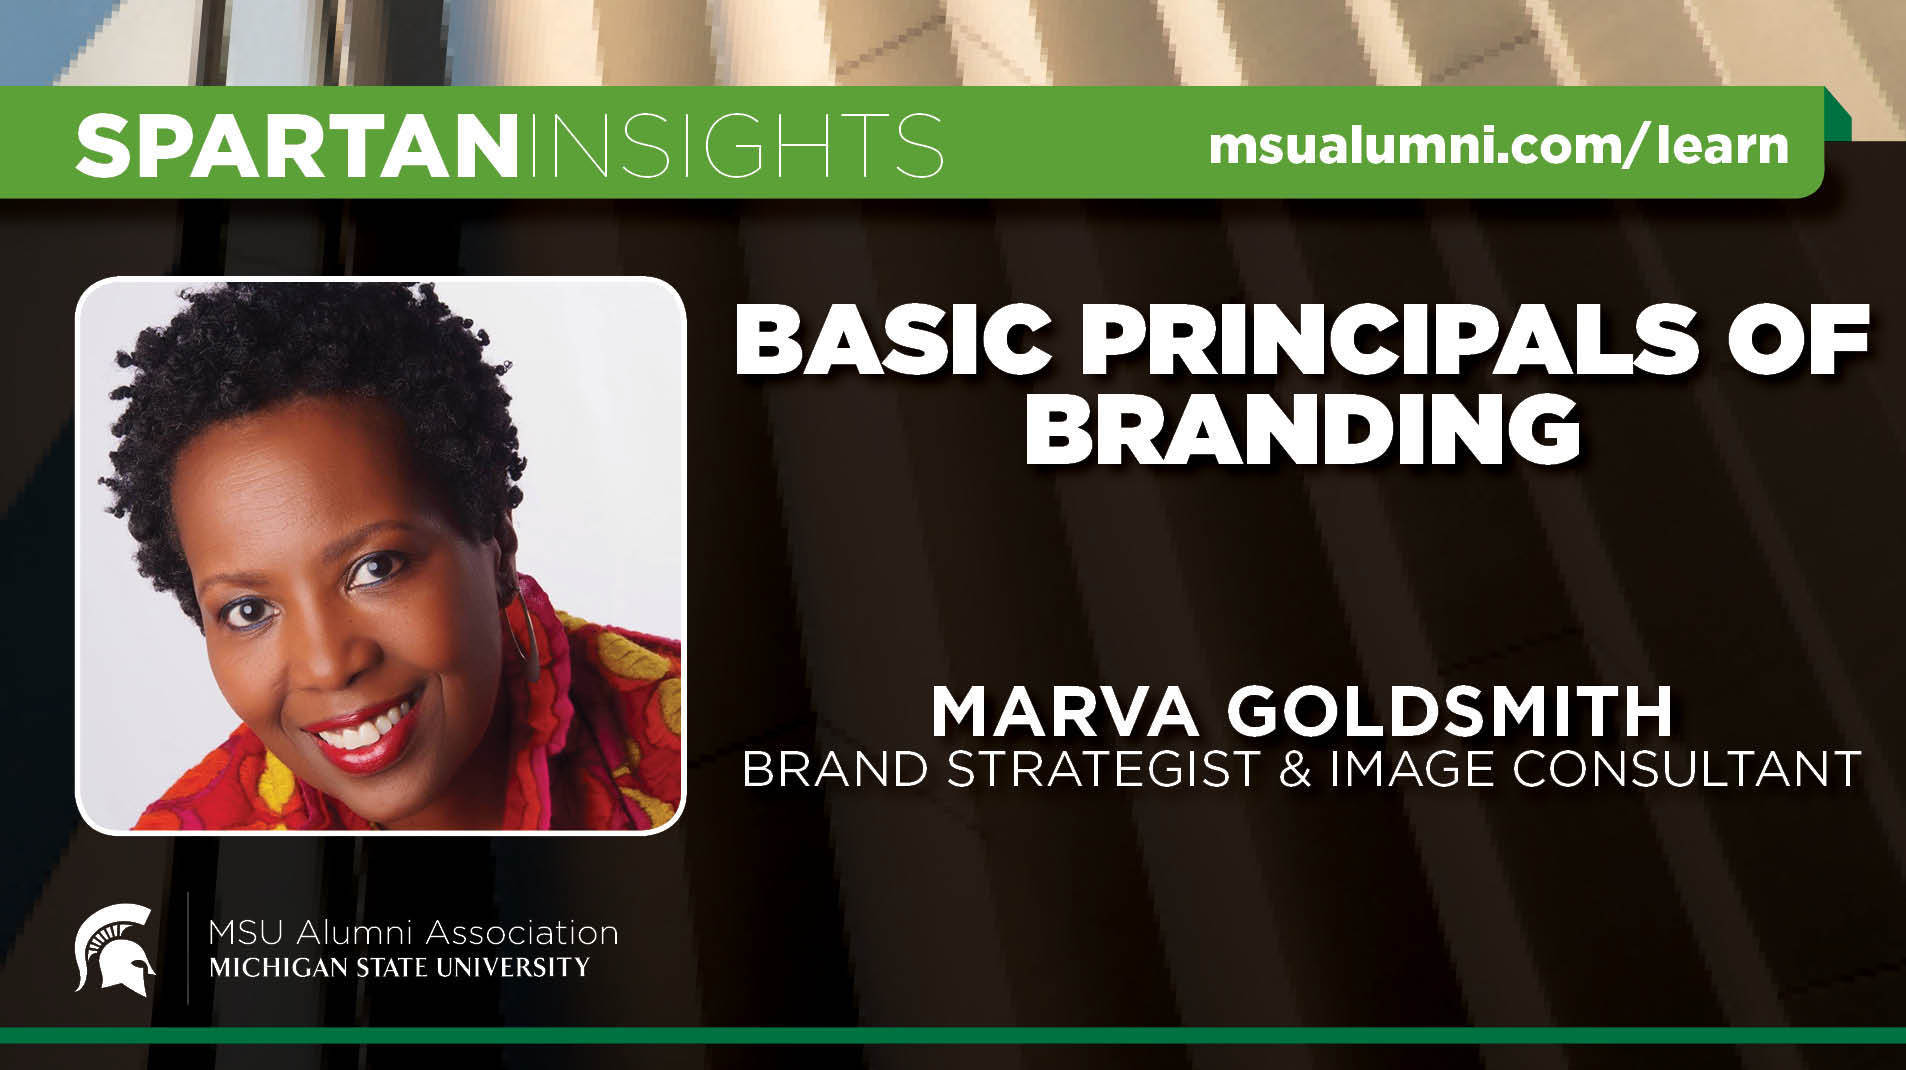 webinar cover image for Marva Goldsmith | Basic Principles of Branding